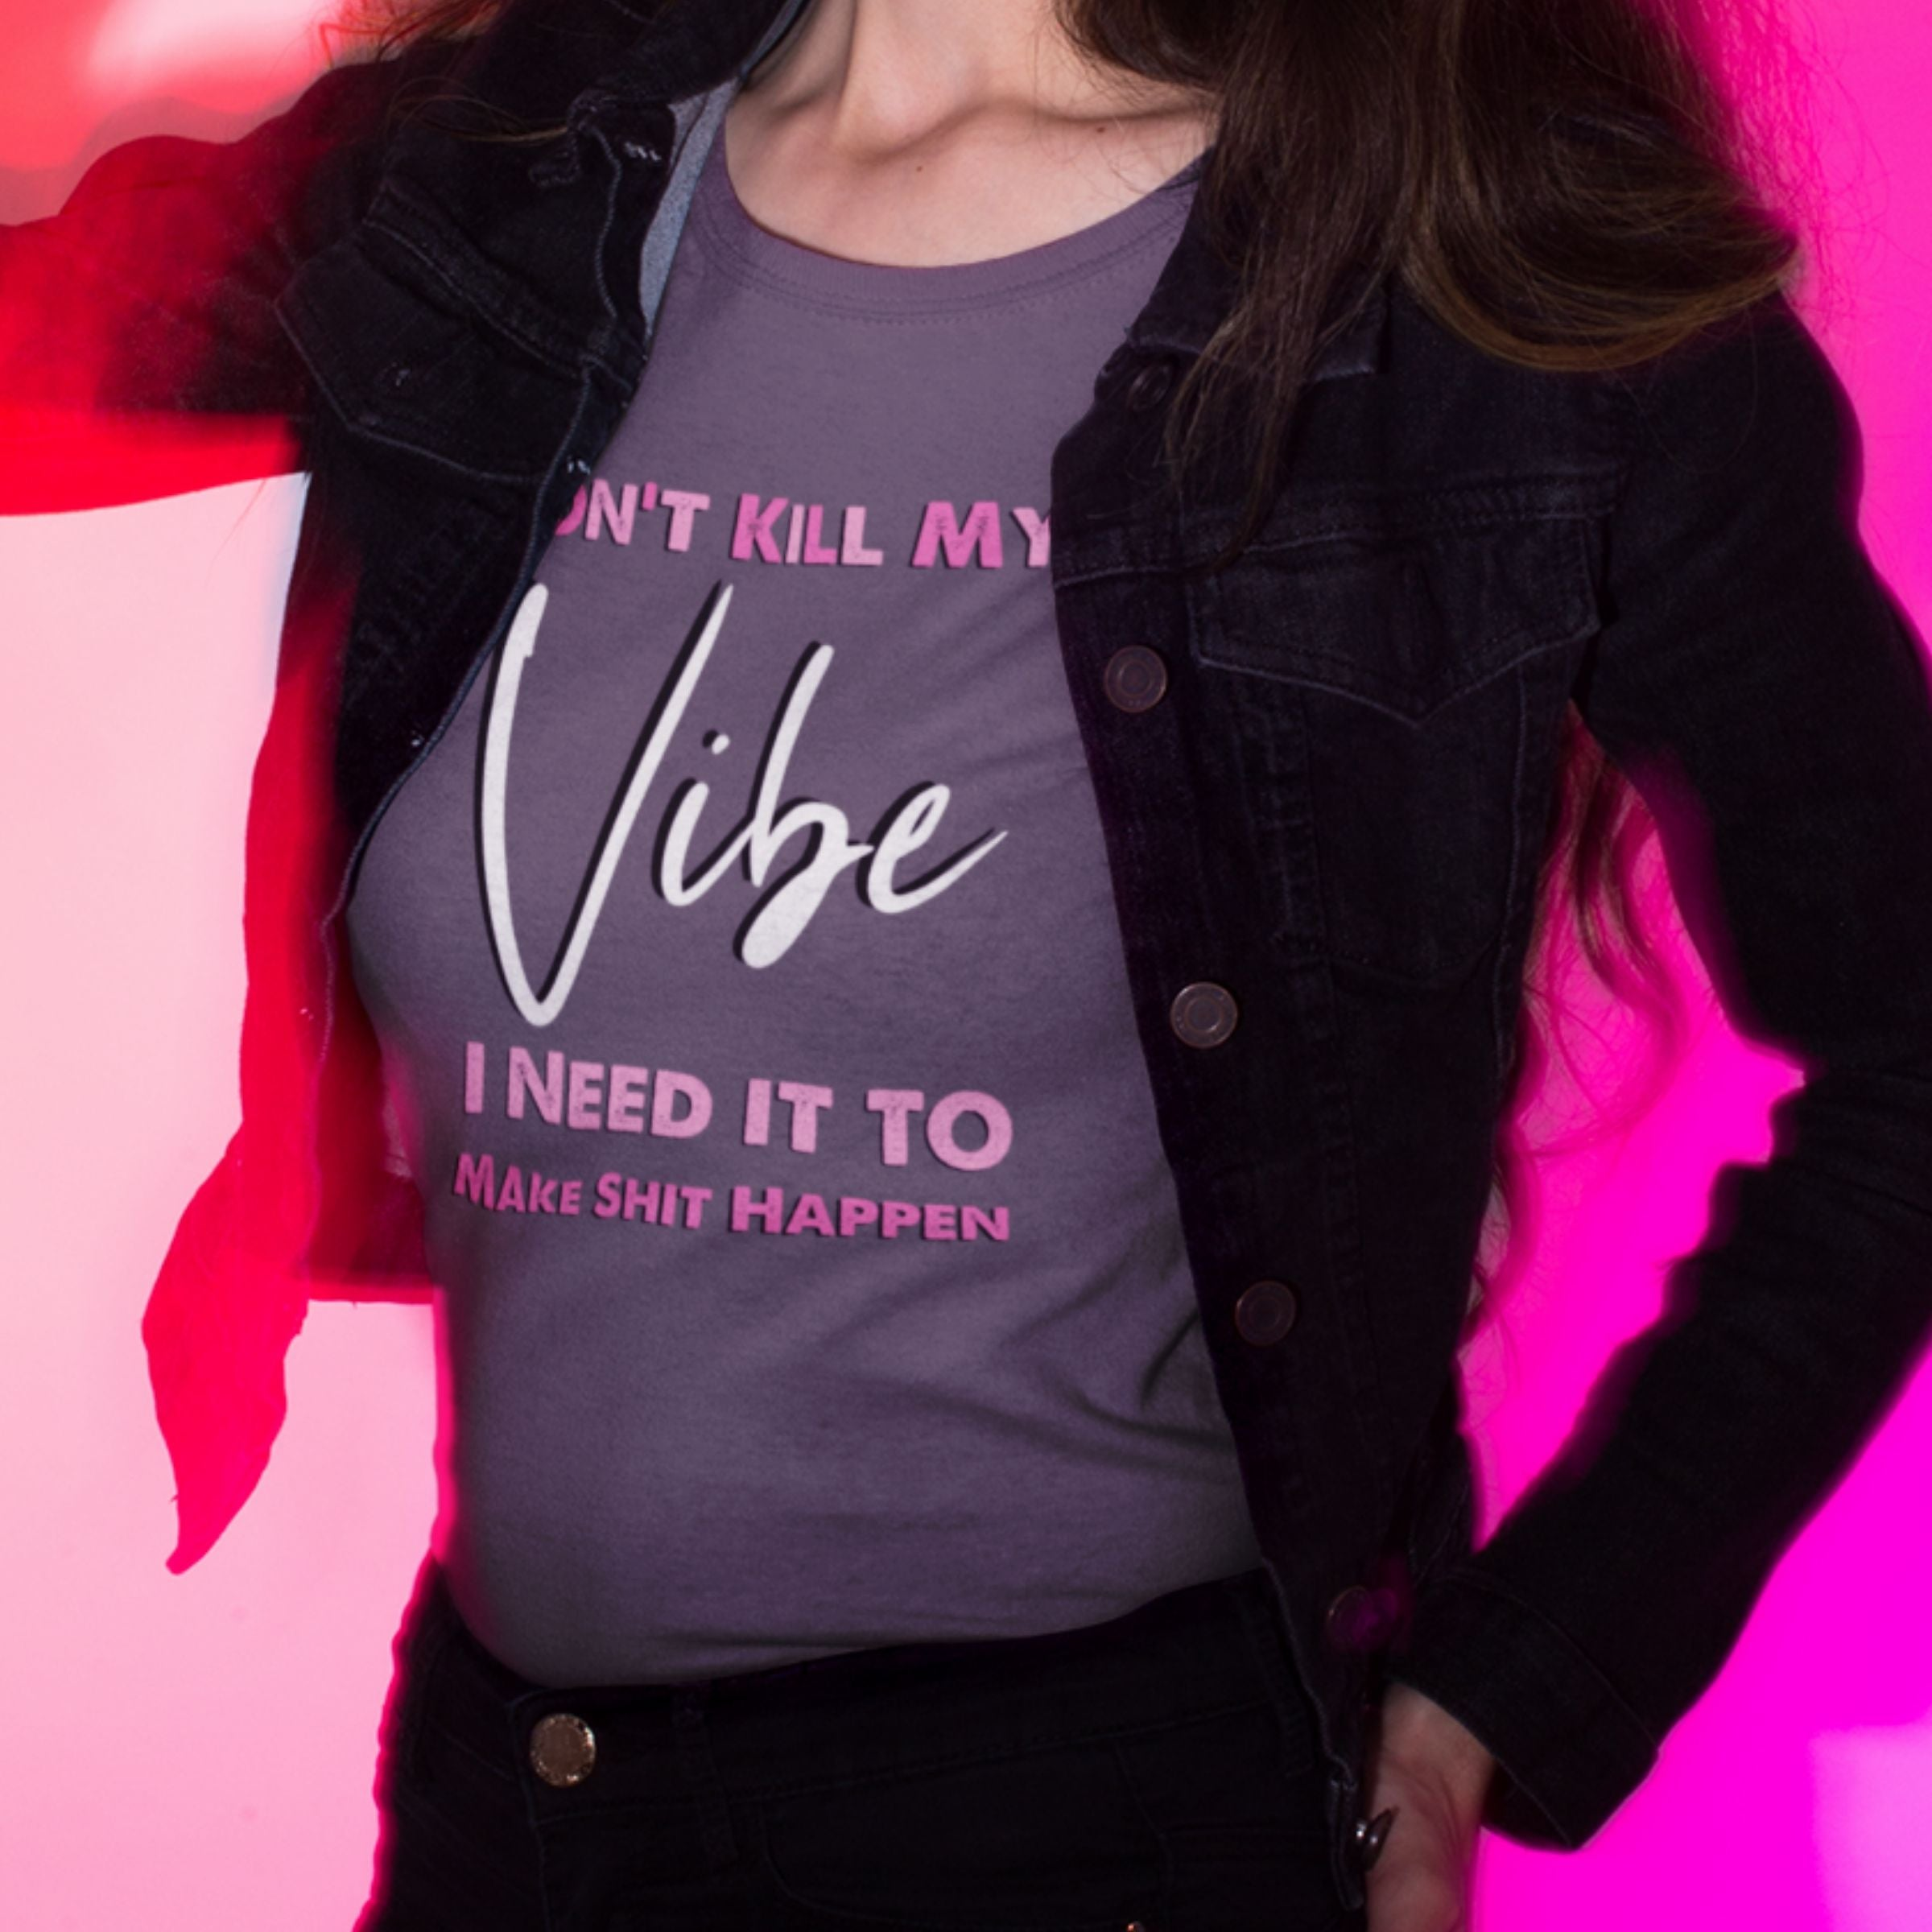 S - Don't Kill My Vibe - Pink-Shop-Wholesale-Womens-Boutique-Custom-Graphic-Tees-Branding-Gifts